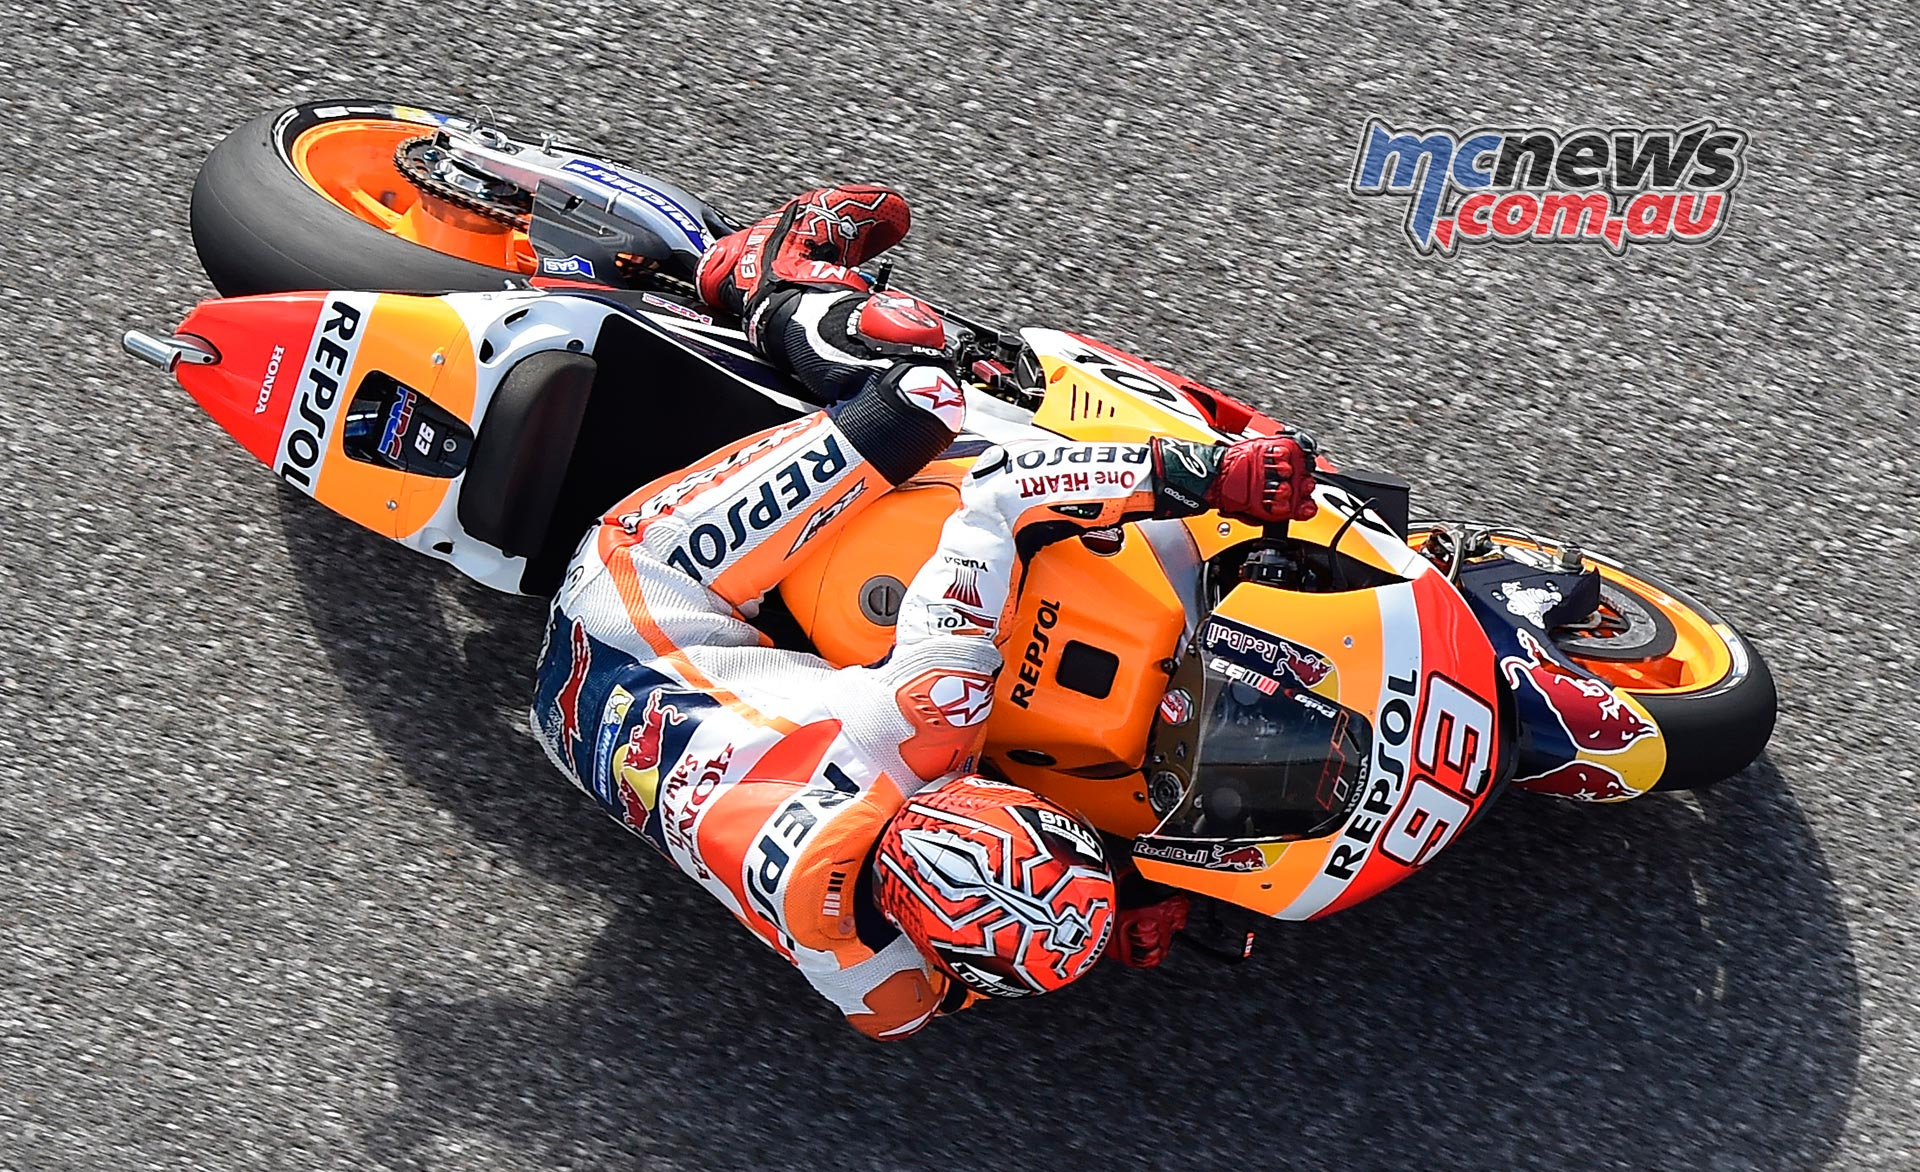 Marquez tops day one of COTA MotoGP | MCNews.com.au